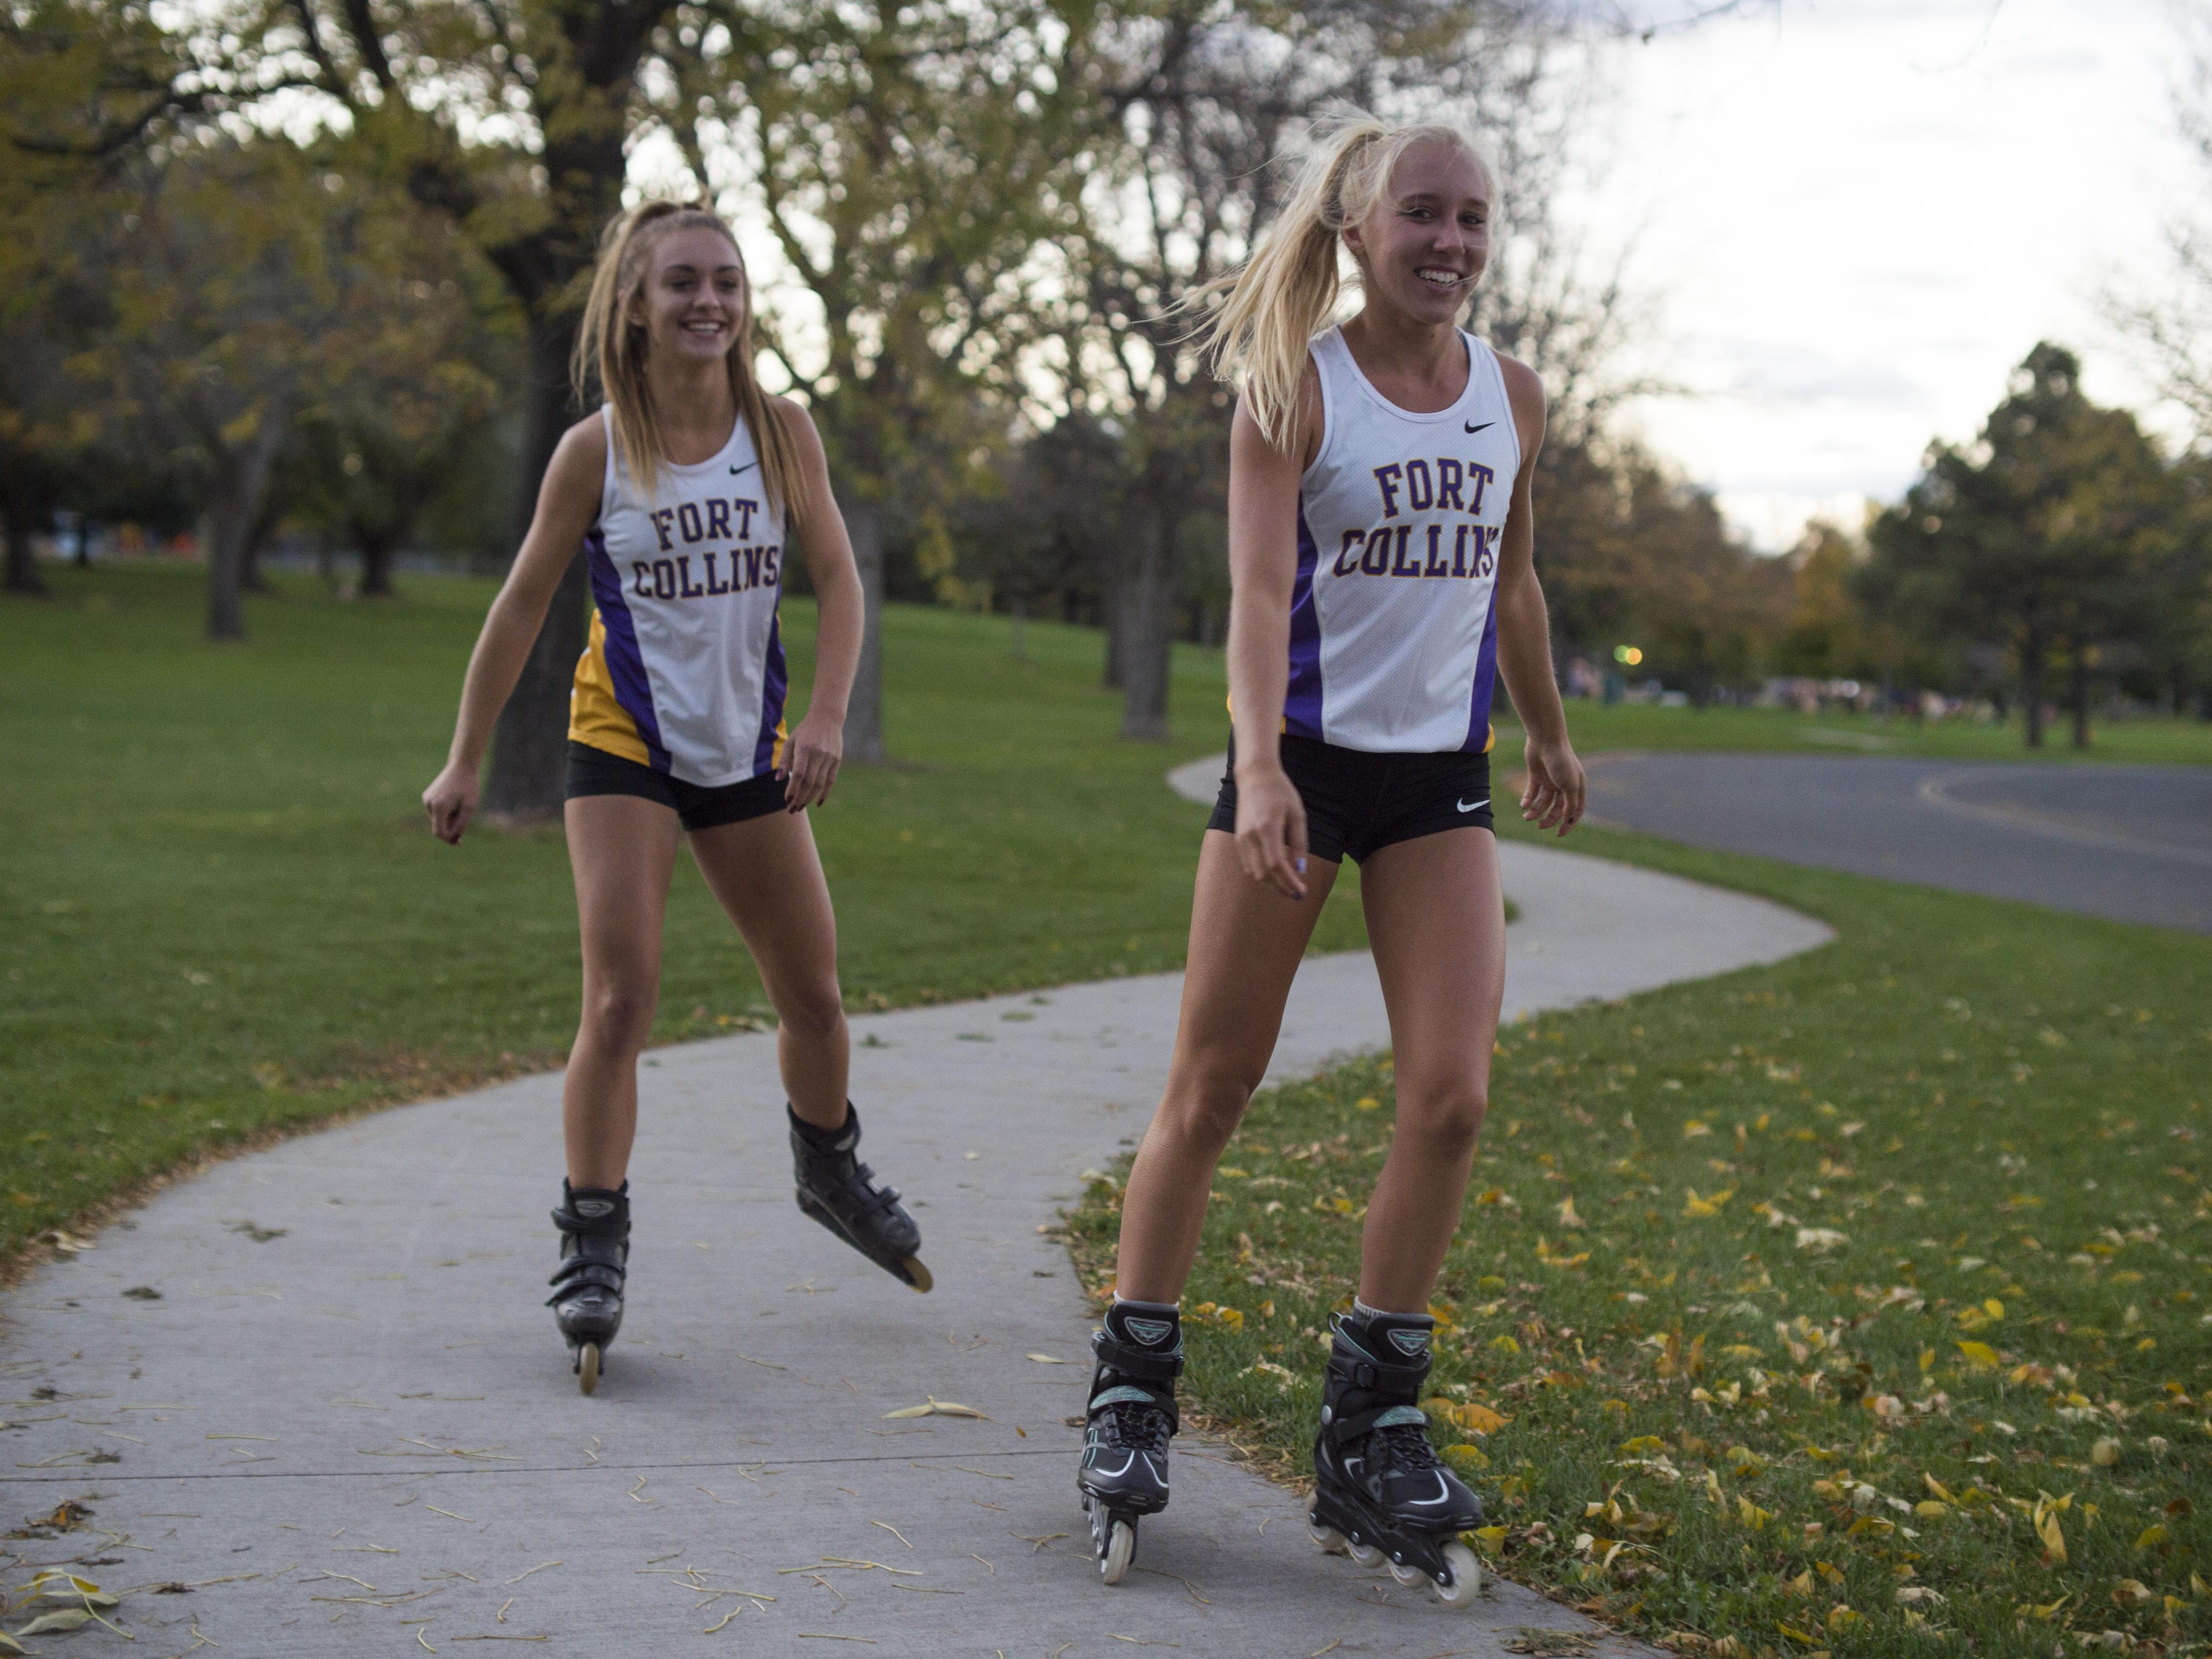 Fort Collins High School's Lauren Gregory, right, and Claire Hooker inline skate in Fort Collins' Edora Park. Gregory is a back-to-back state champion in cross country with strong prospects at Saturday's state meet in Colorado Springs.